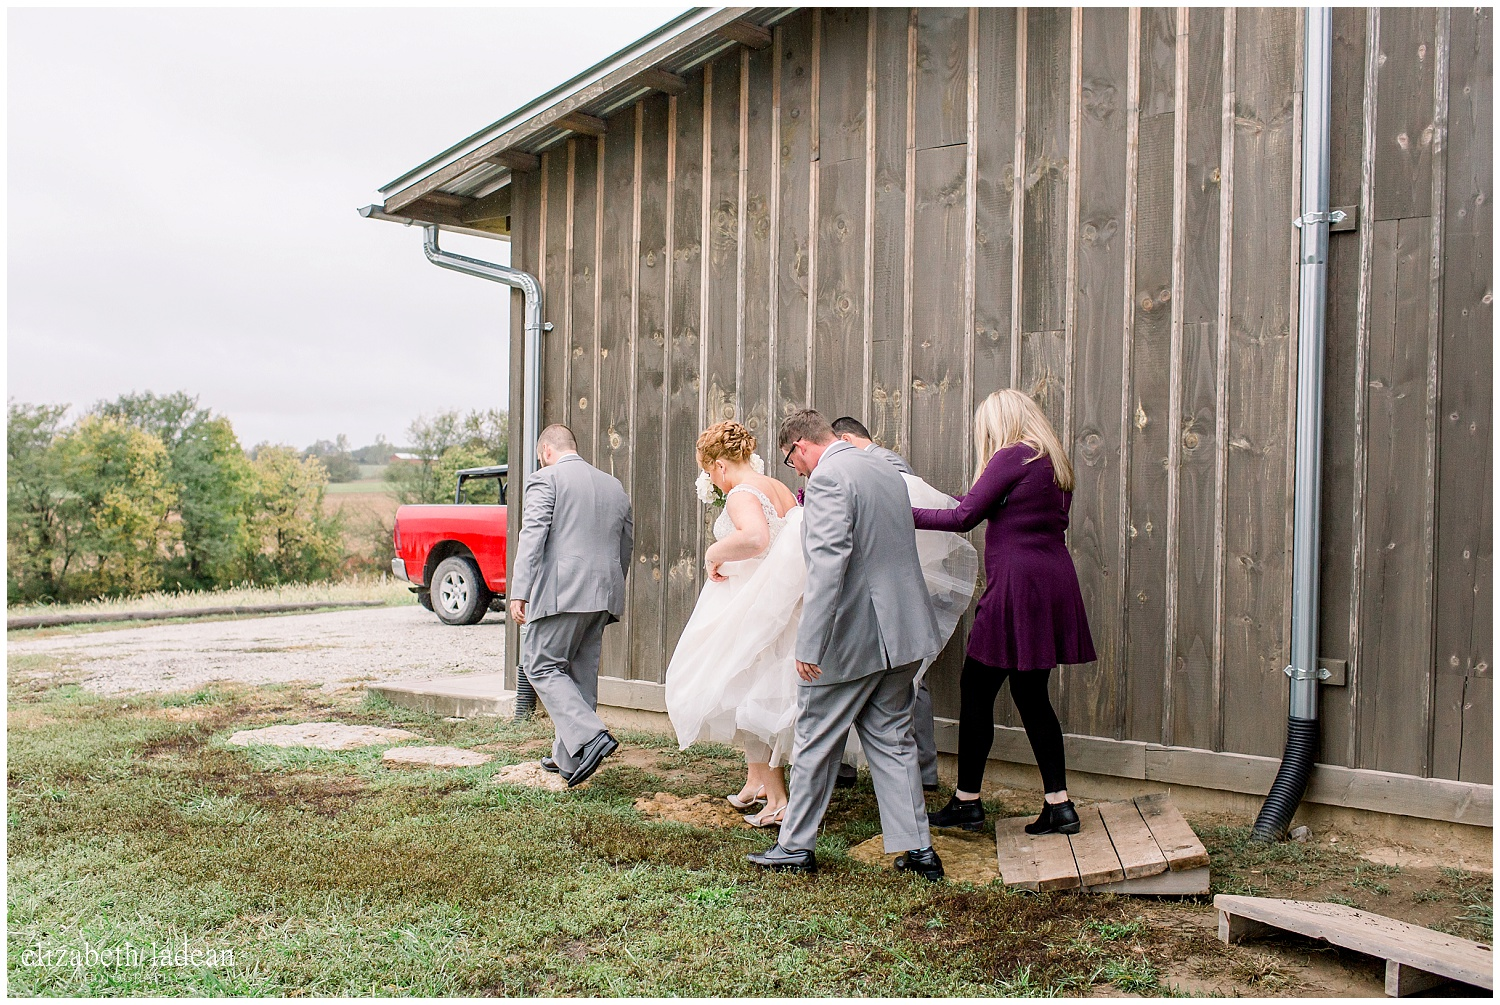 -behind-the-scenes-of-a-wedding-photographer-2018-elizabeth-ladean-photography-photo_3583.jpg